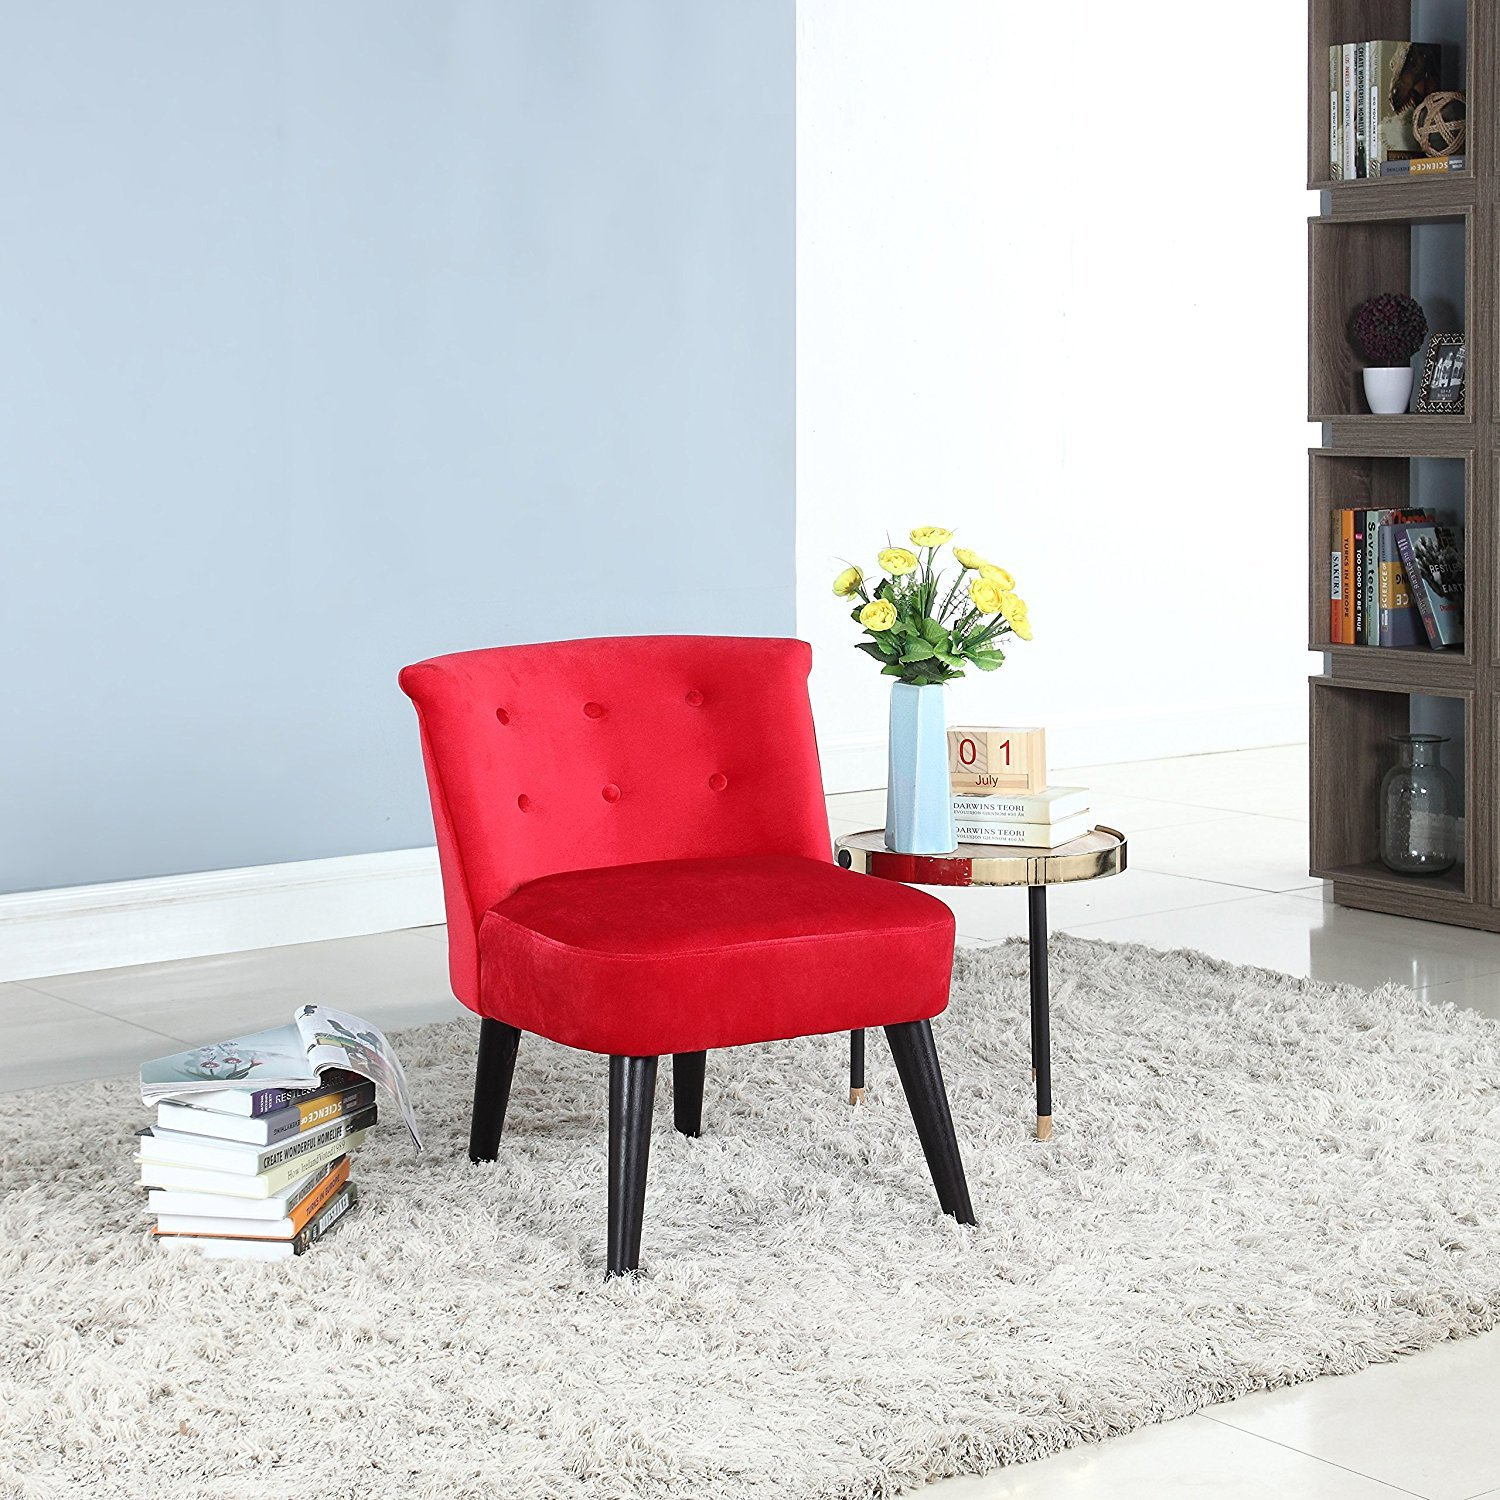 Details About Modern Living Room Chair Armless Velvet Accent Chair Wood Legs Red